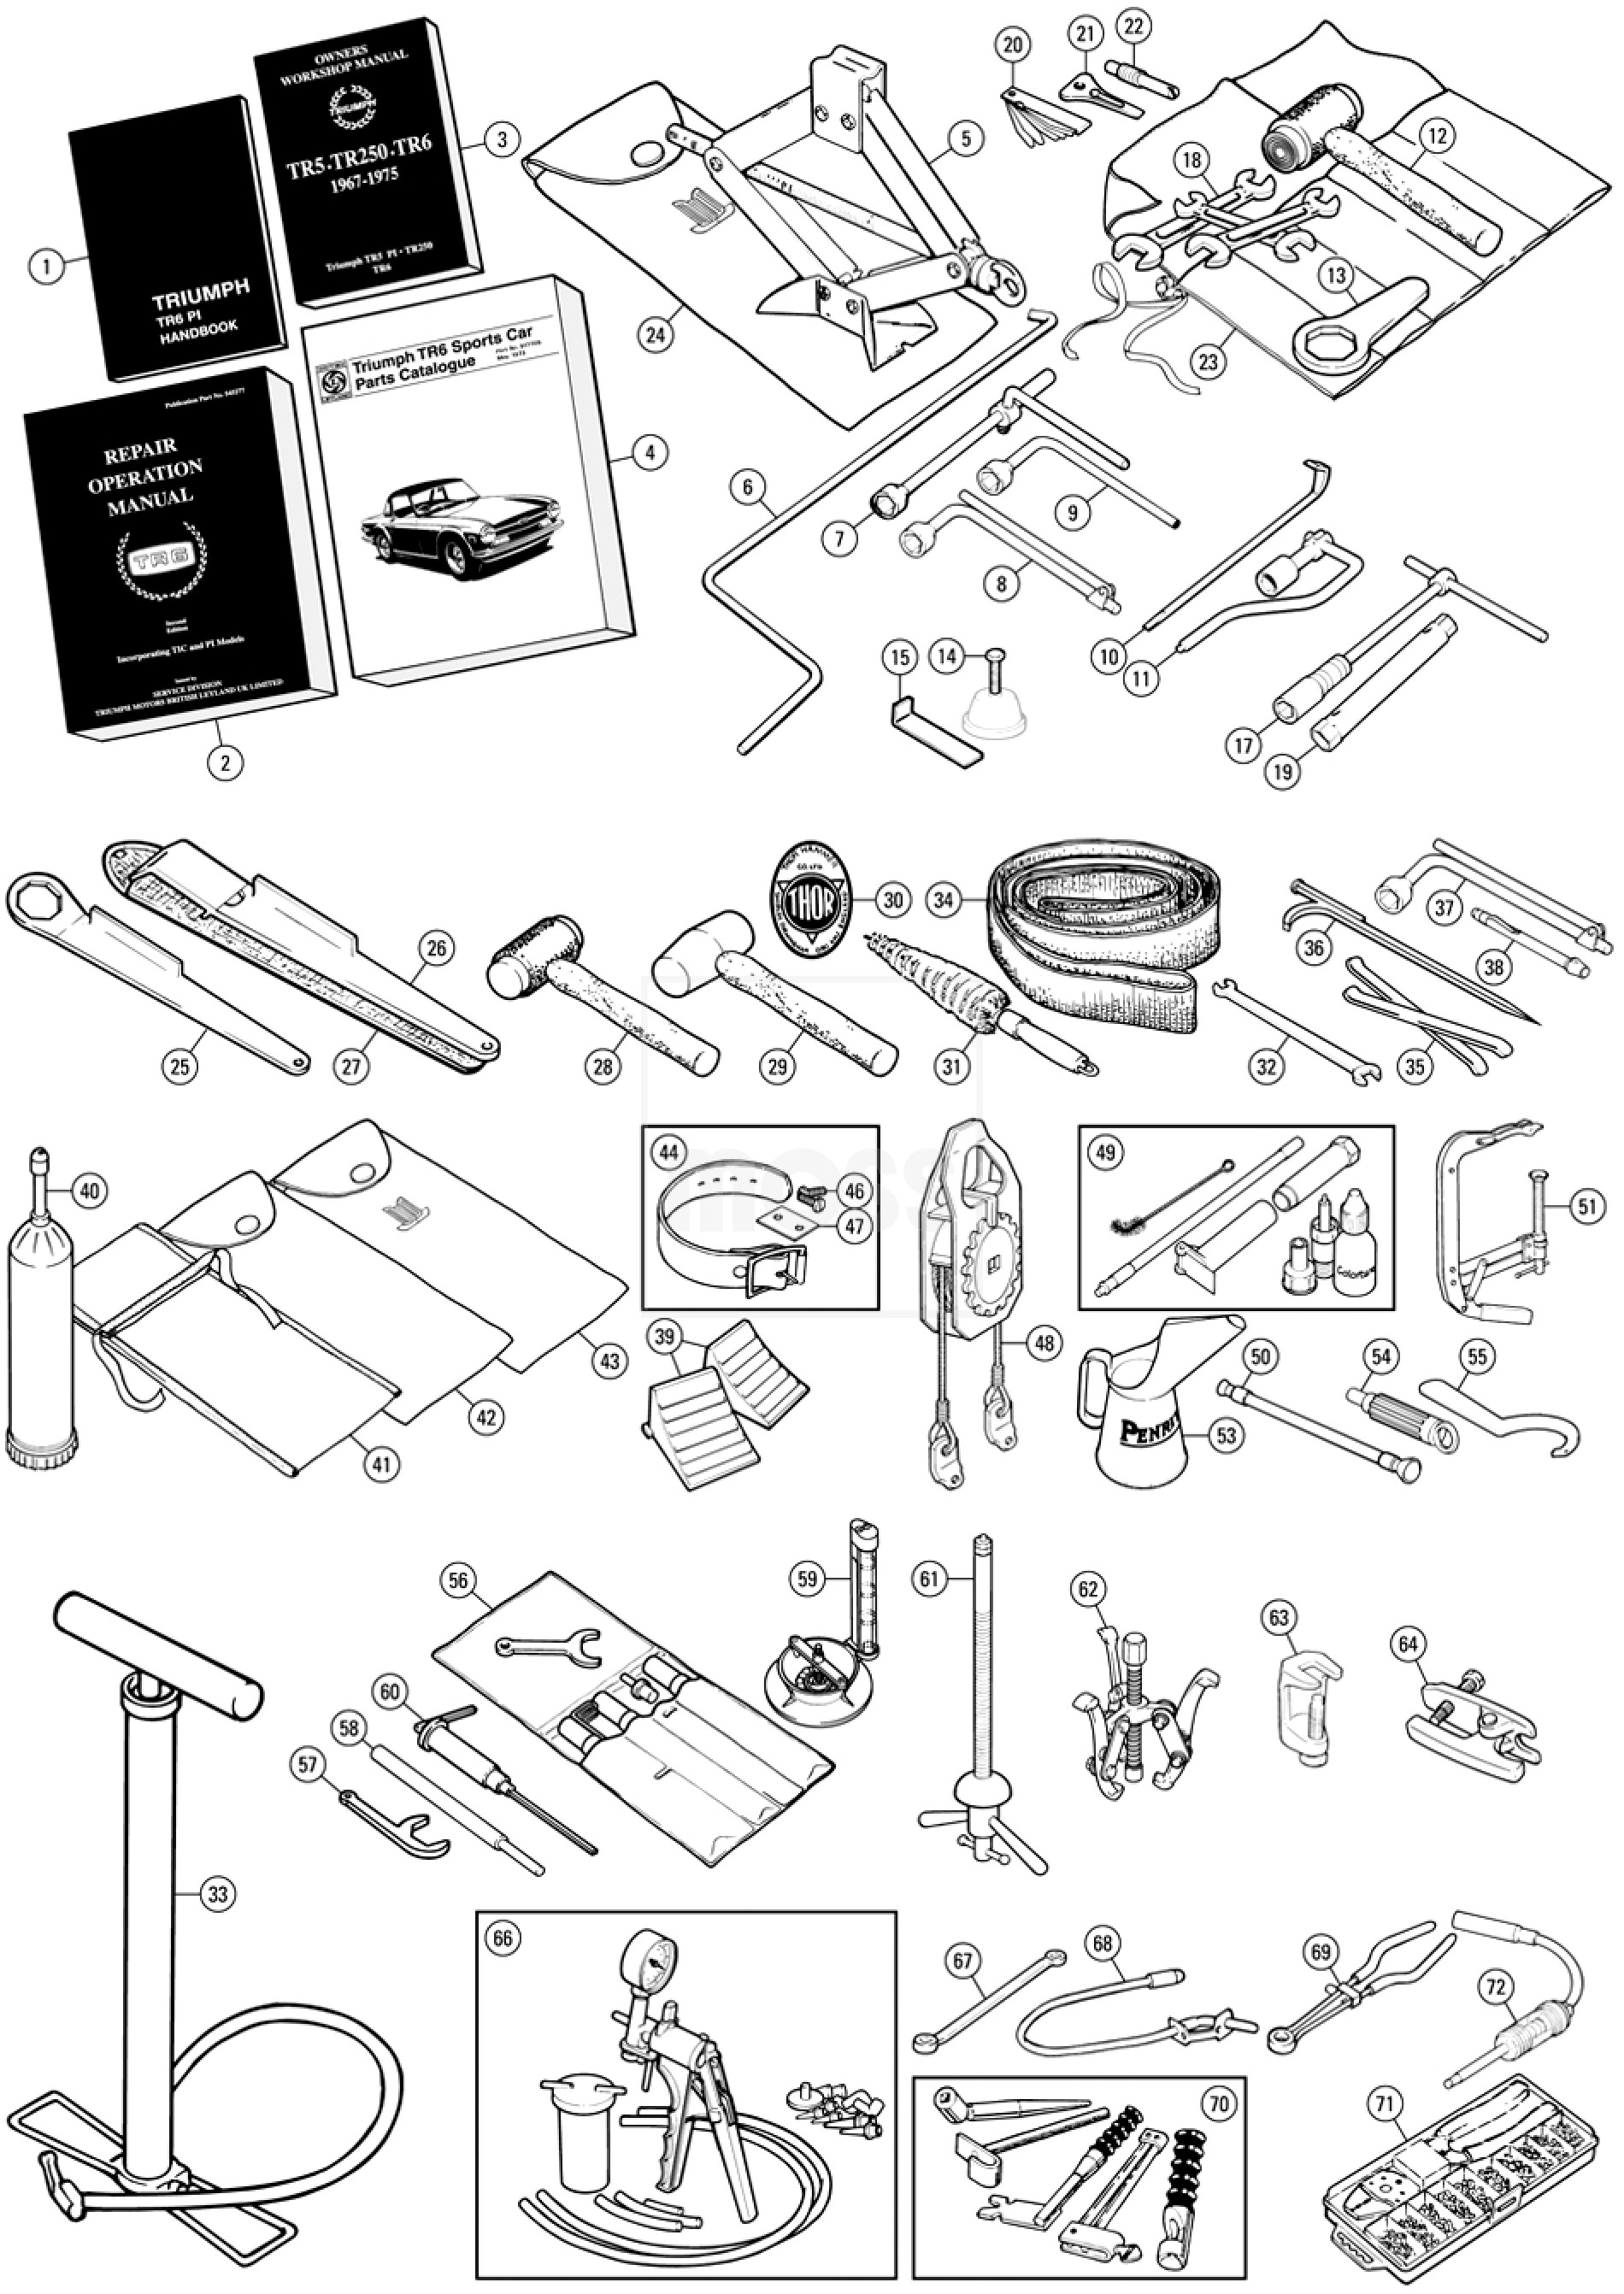 1971 triumph tr6 wiring diagram 2007 chrysler sebring ac 1974 imageresizertool com